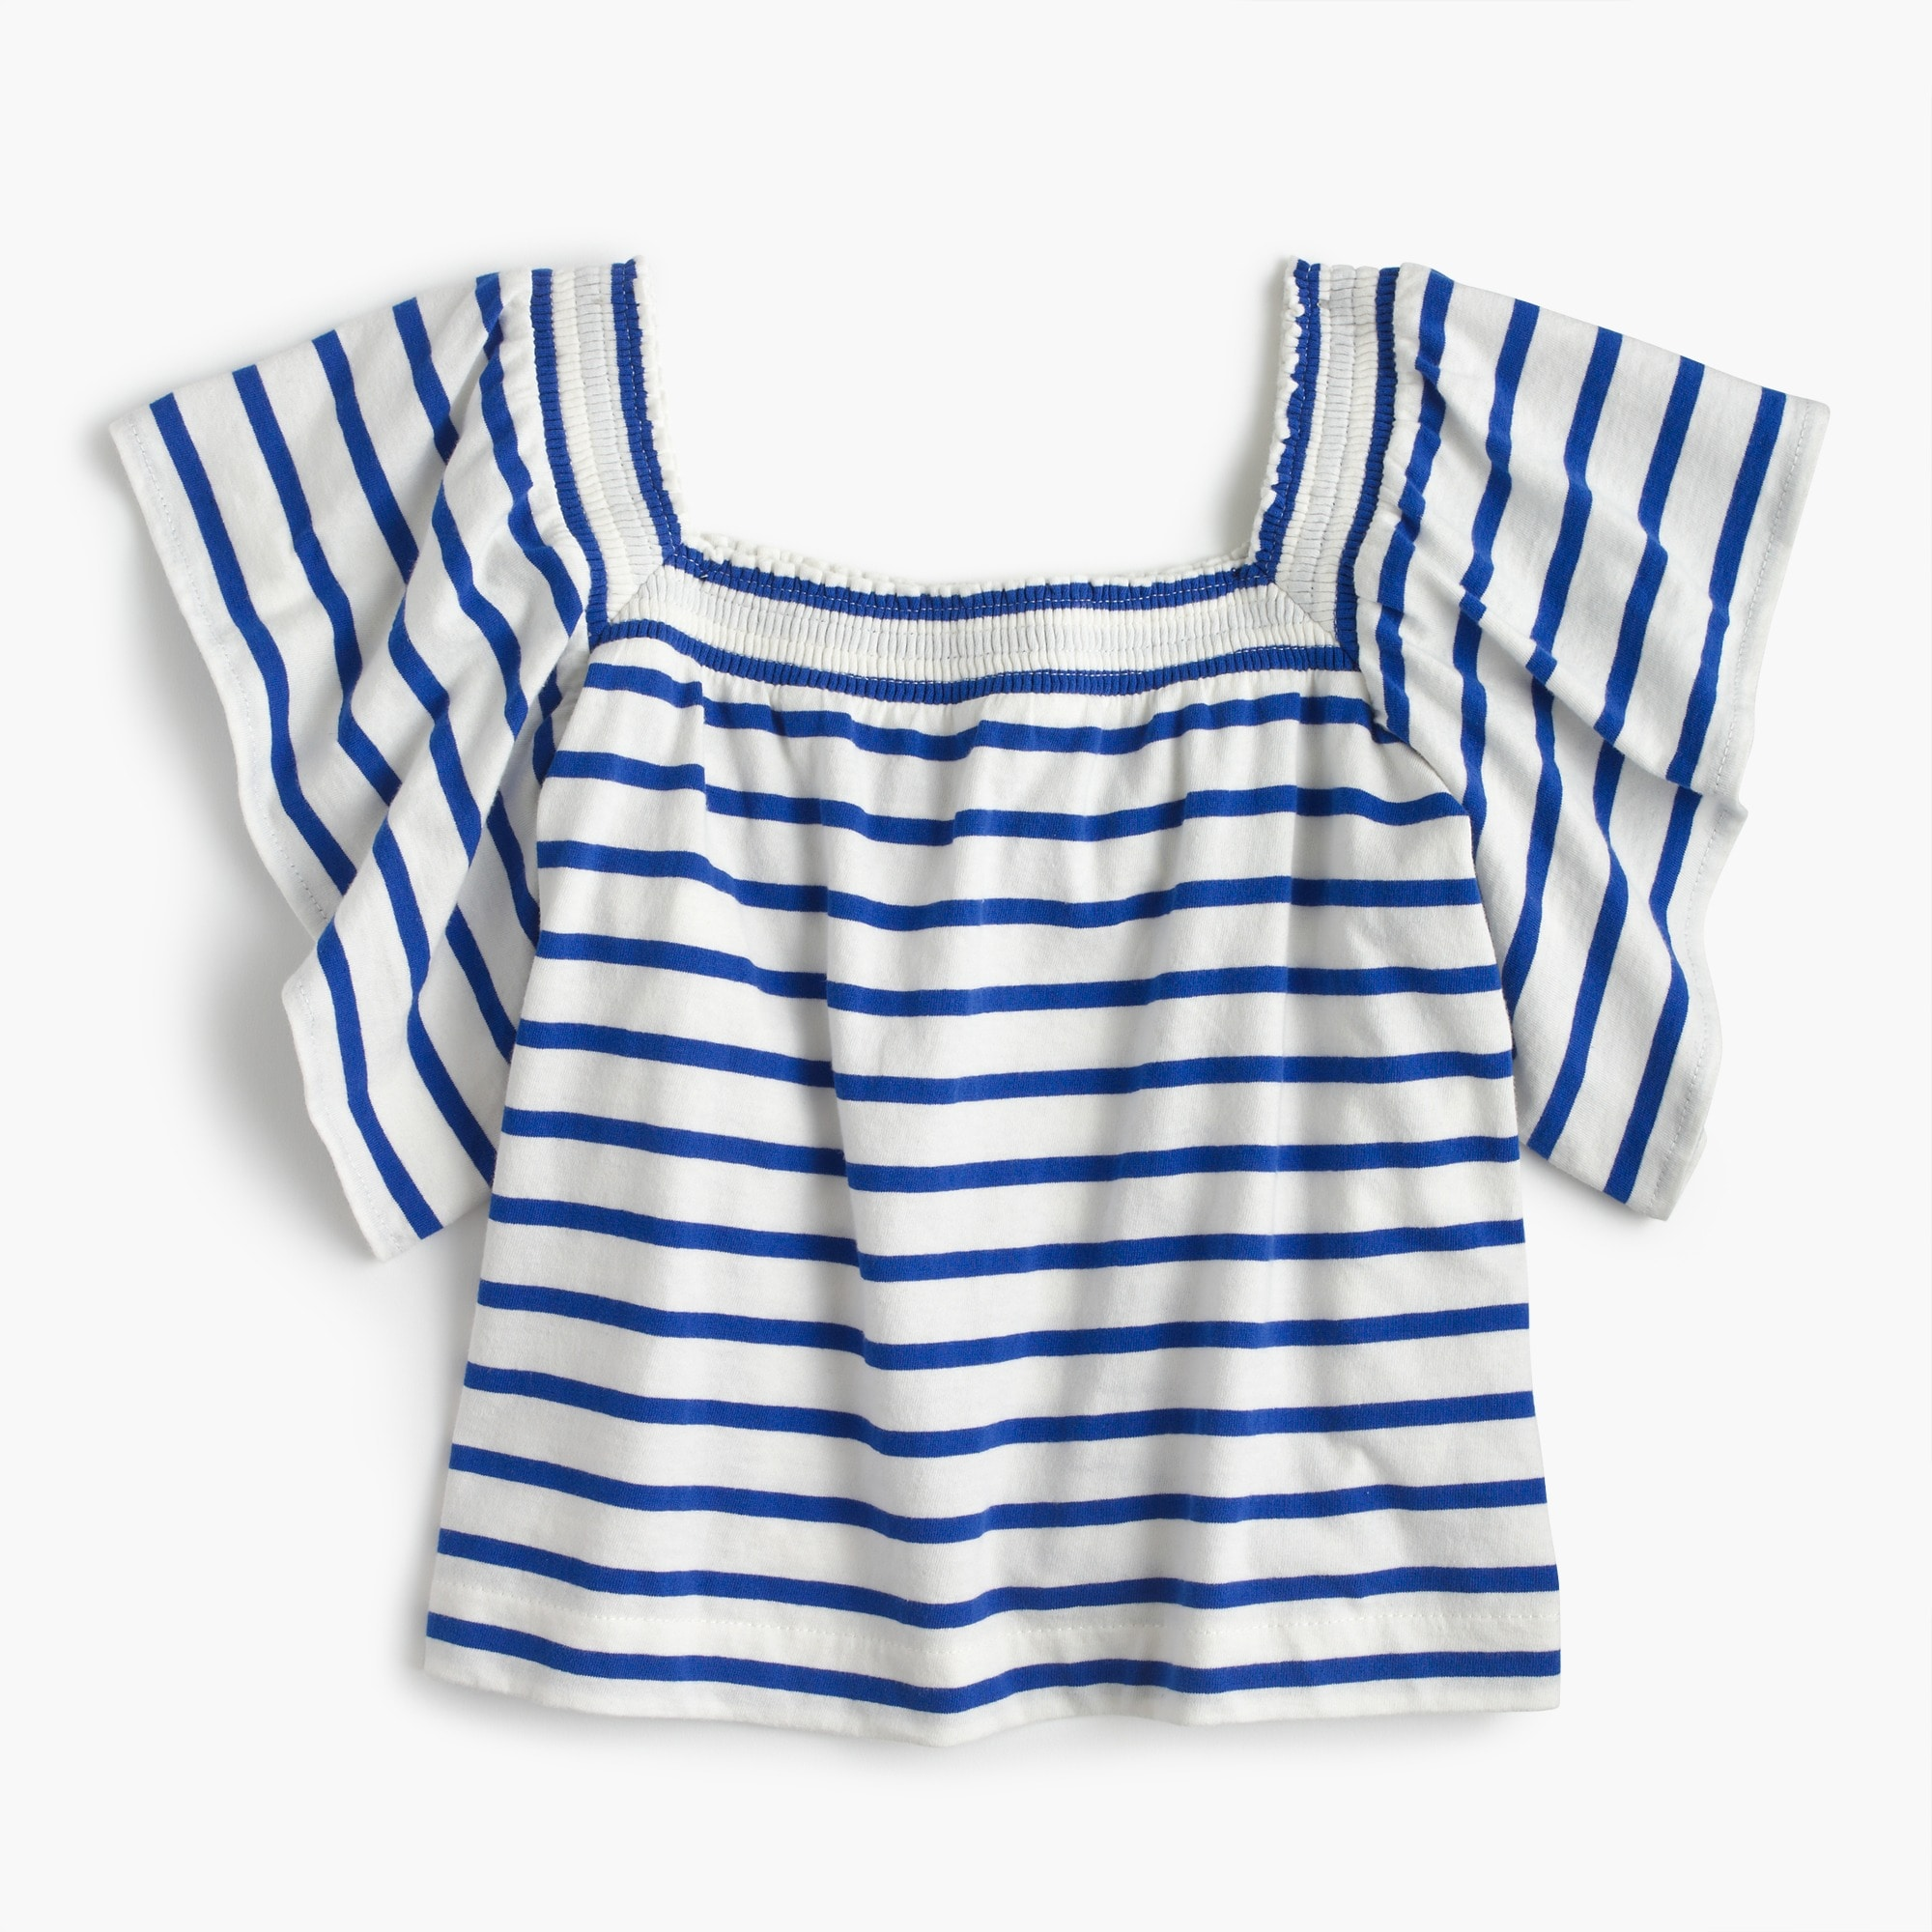 Girls' two-way striped top